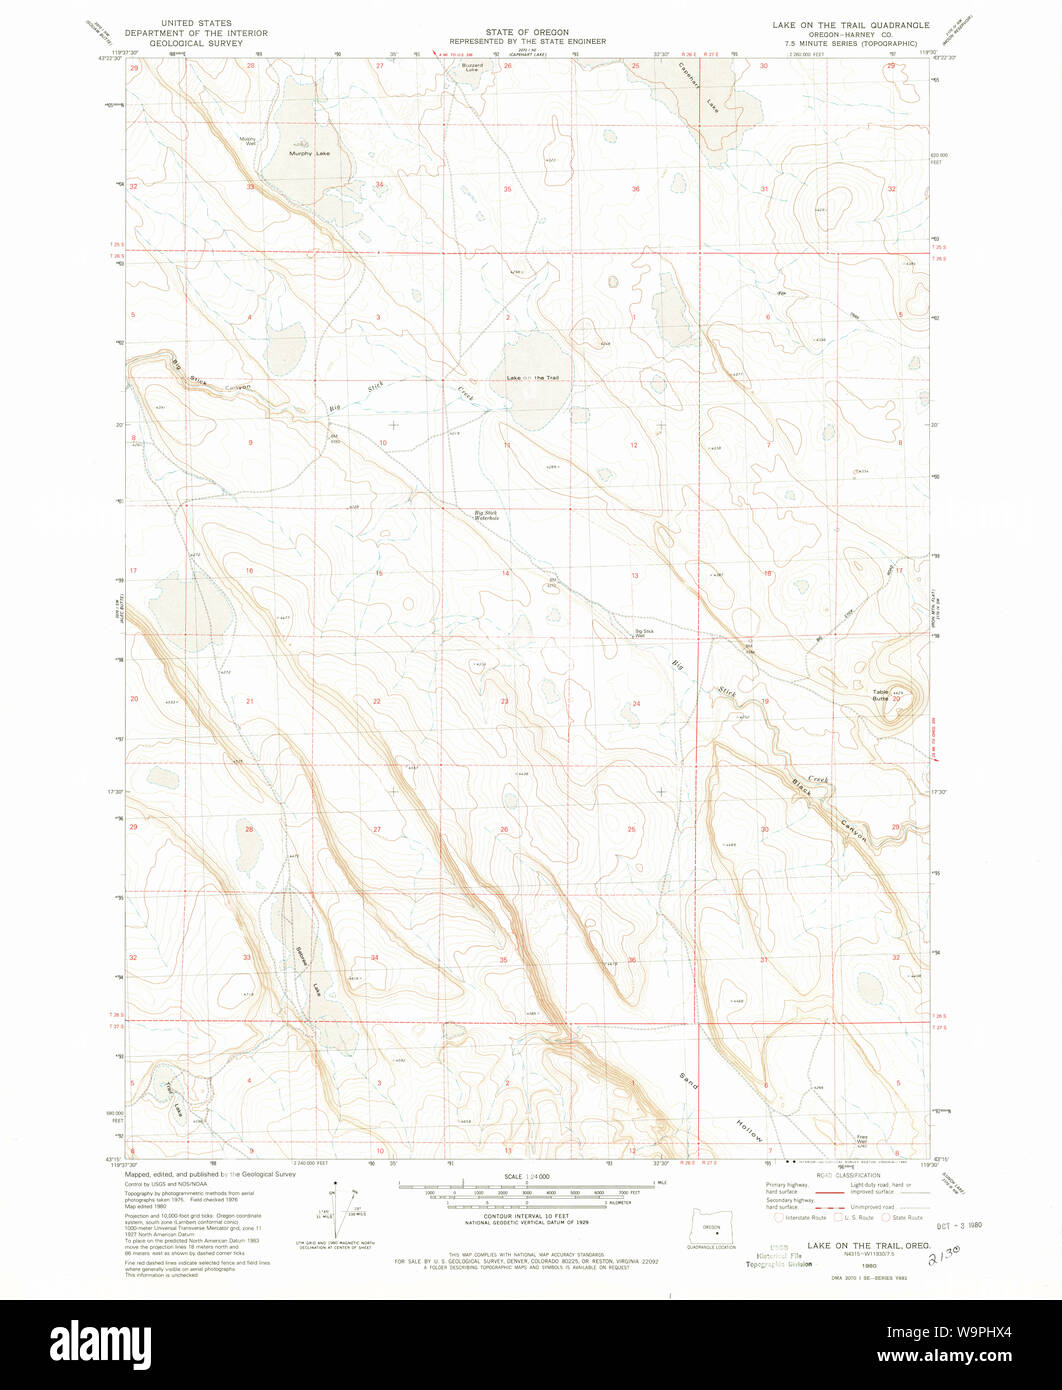 USGS Topo Map Oregon Lake on The Trail 280438 1980 24000